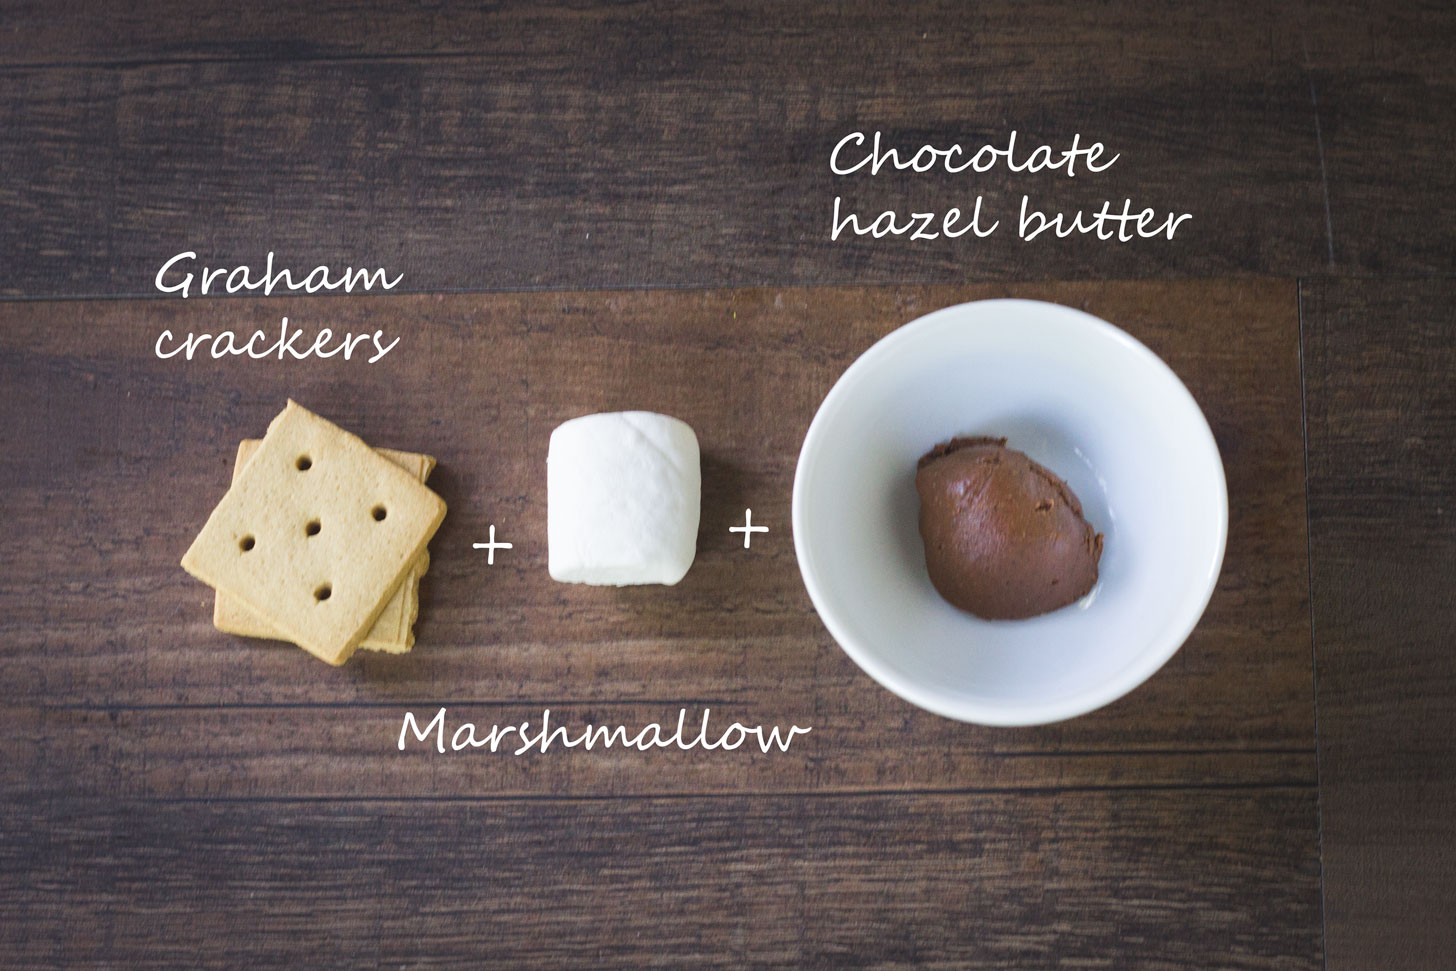 Vegan graham crackers, marshmallow, and chocolate hazelnut butter.